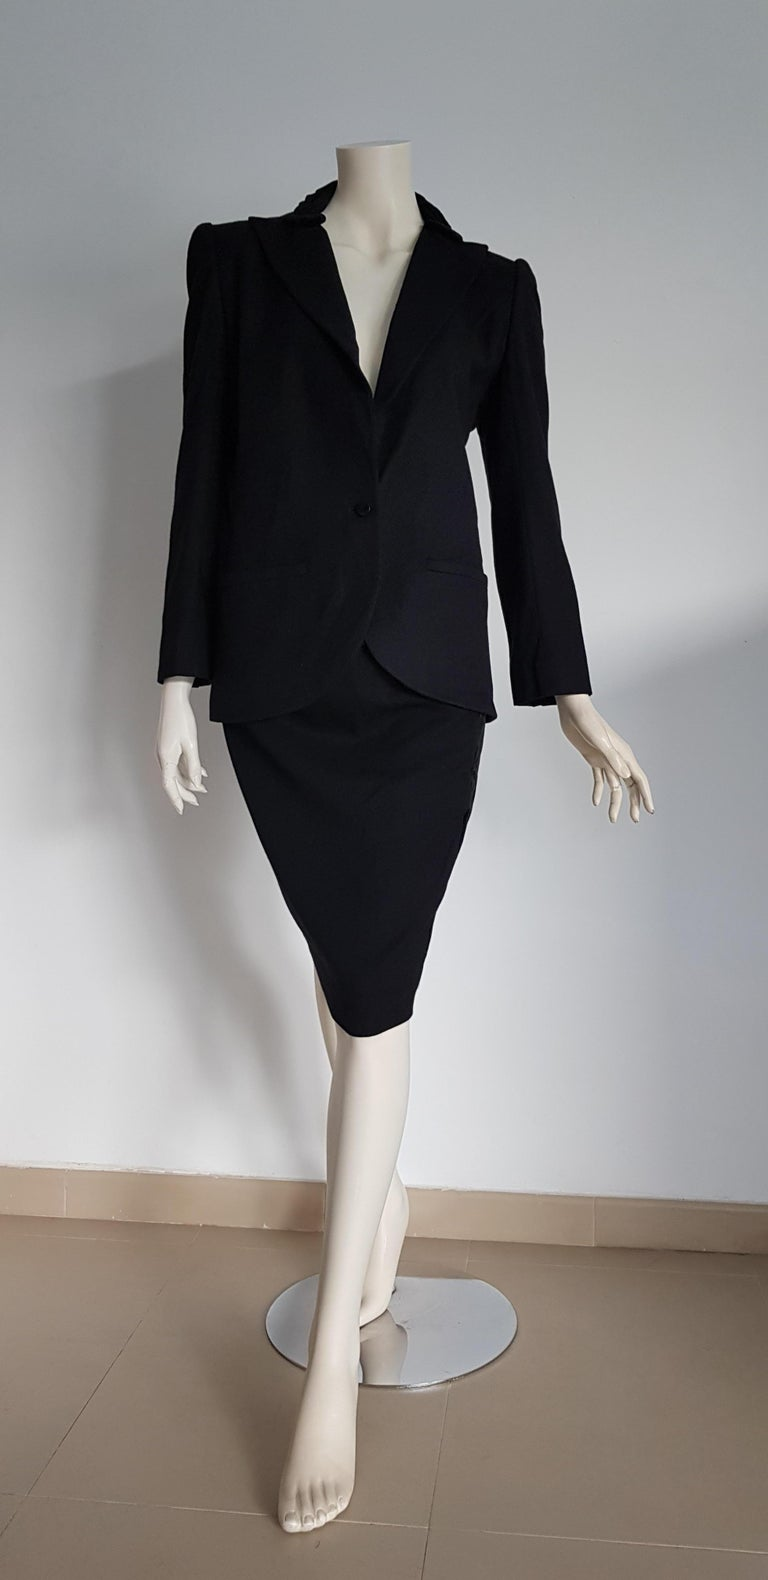 VALENTINO black cashmere embellished collar jacket velvet wool skirt suit - Unworn, New .. SIZE: equivalent to about Small / Medium, please review approx measurements as follows in cm.  JACKET: lenght 73, chest underarm to underarm 50, bust